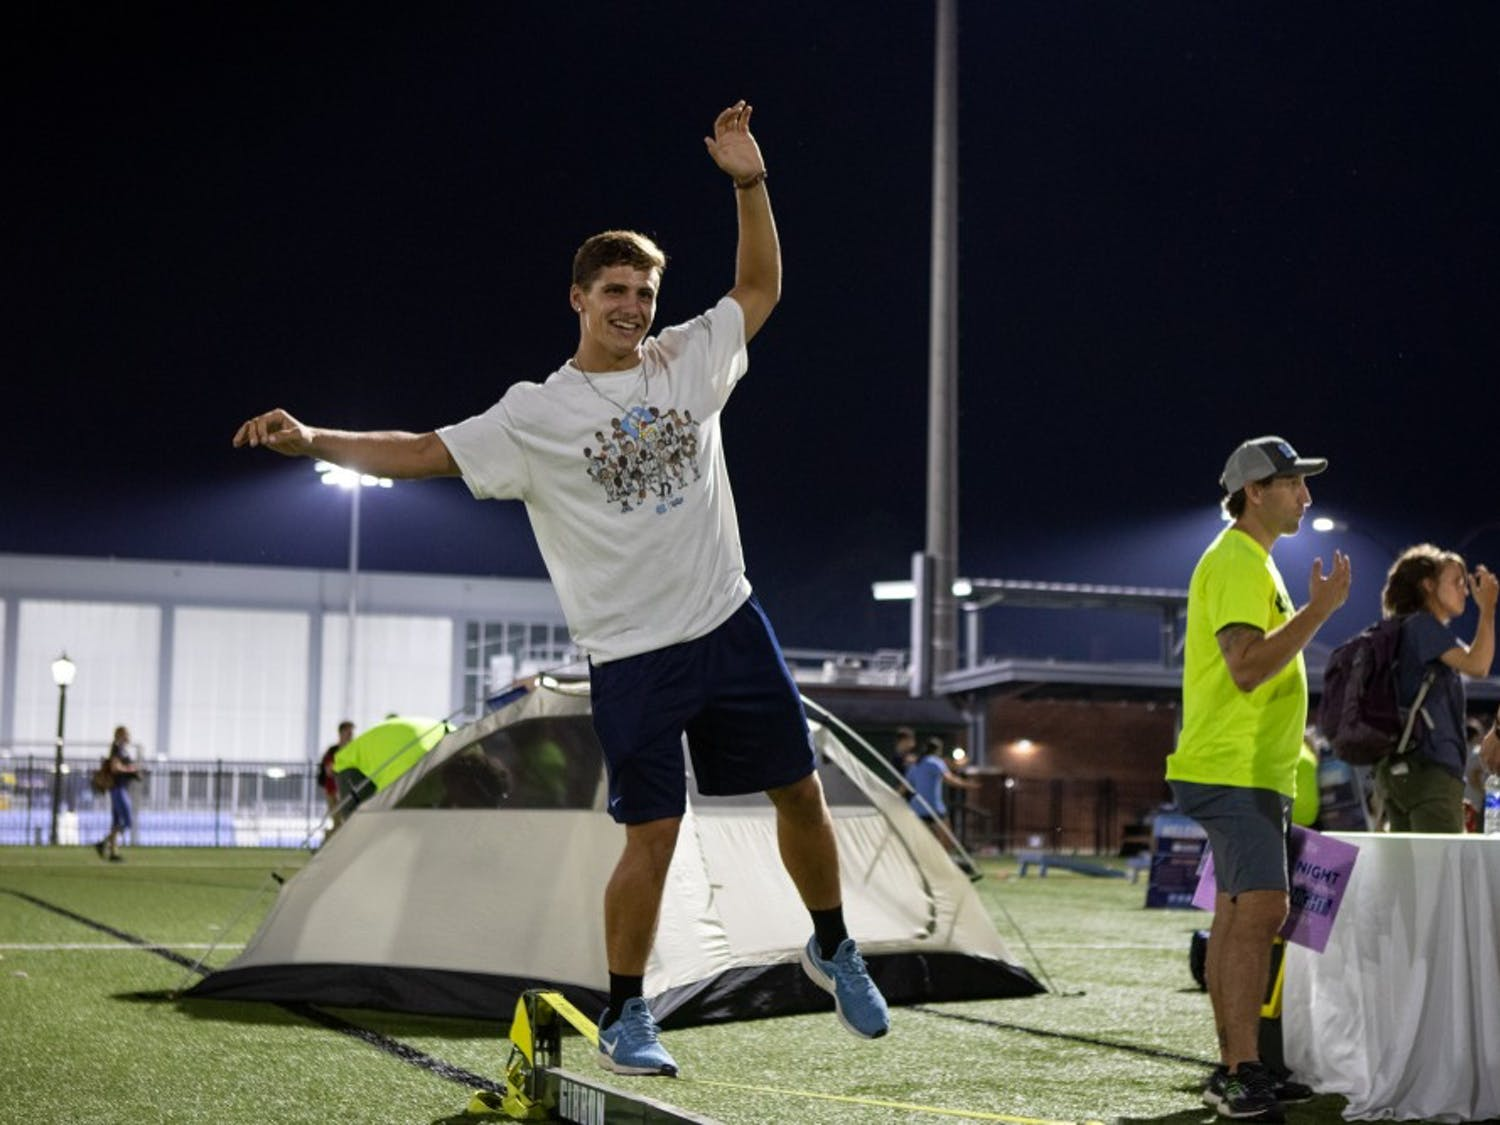 Luke Eggleston, a junior economics major, balances on the slack line during Fallfest on Hooker Fields on the evening of Sunday, August 18 2019.